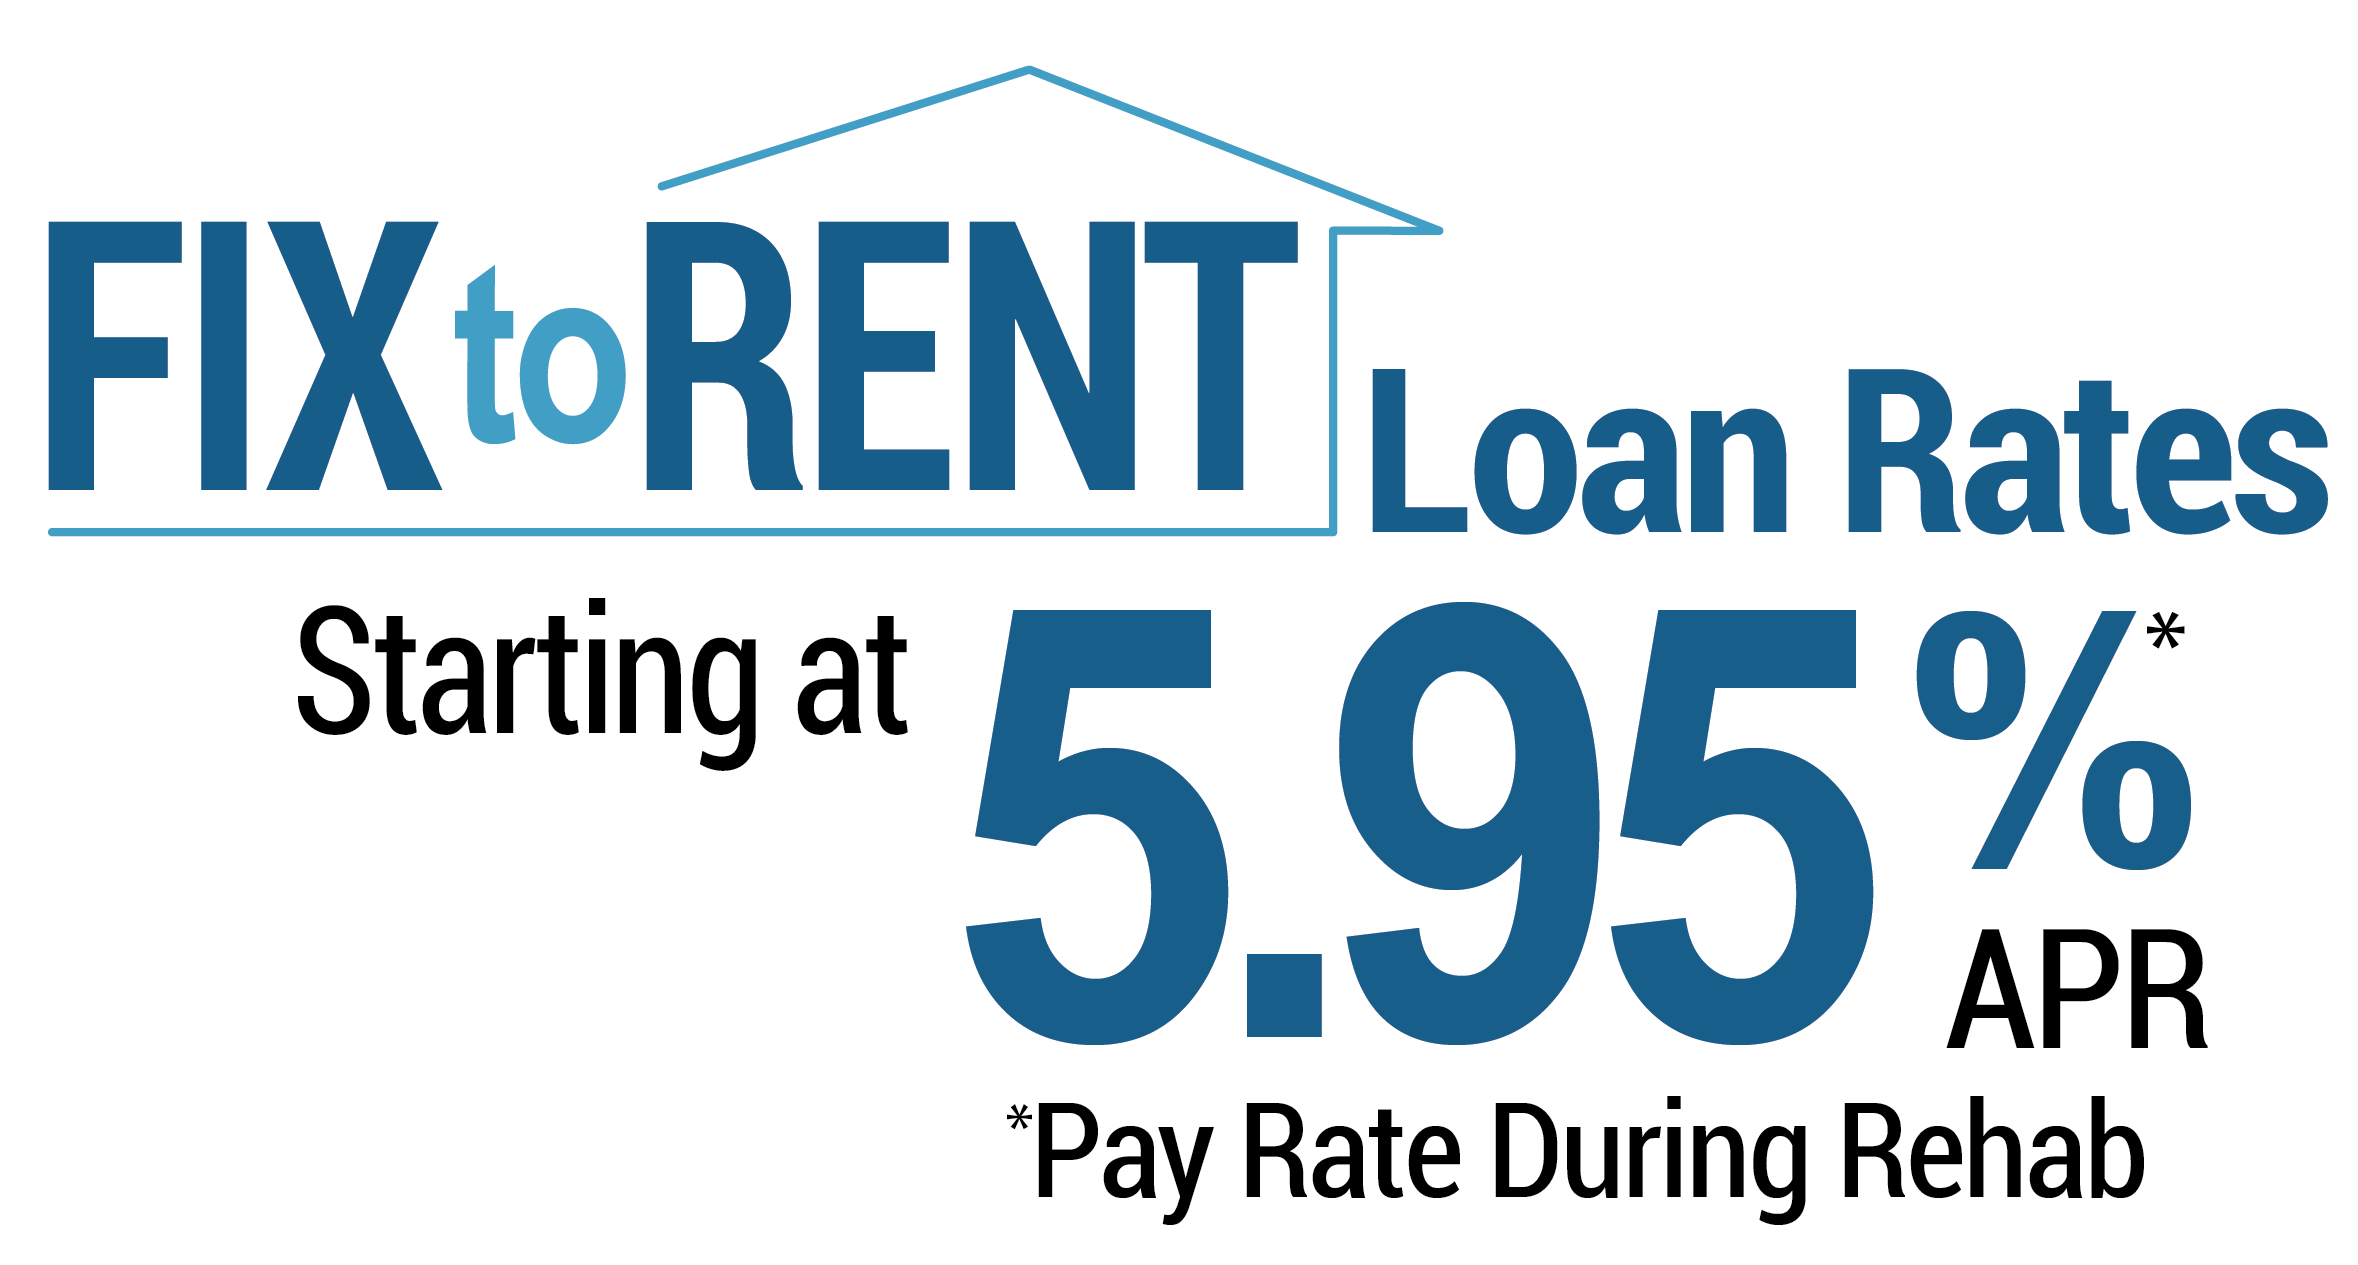 Fix to rent loan rates starting at 5.95% APR* *pay rate during rehab